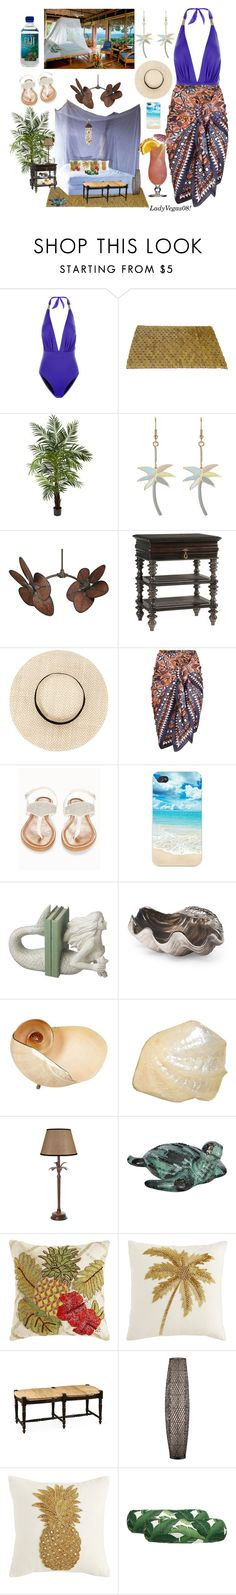 """""""Relaxation in Fiji!"""" by ladyvegas08 ❤ liked on Polyvore featuring Lazul, Nearly Natural, Paul & Joe, Fanimation, Tommy Bahama, OLIVIA MILLER, Dot & Bo, Pearl Dragon, EMAC & LAWTON and Pier 1 Imports"""